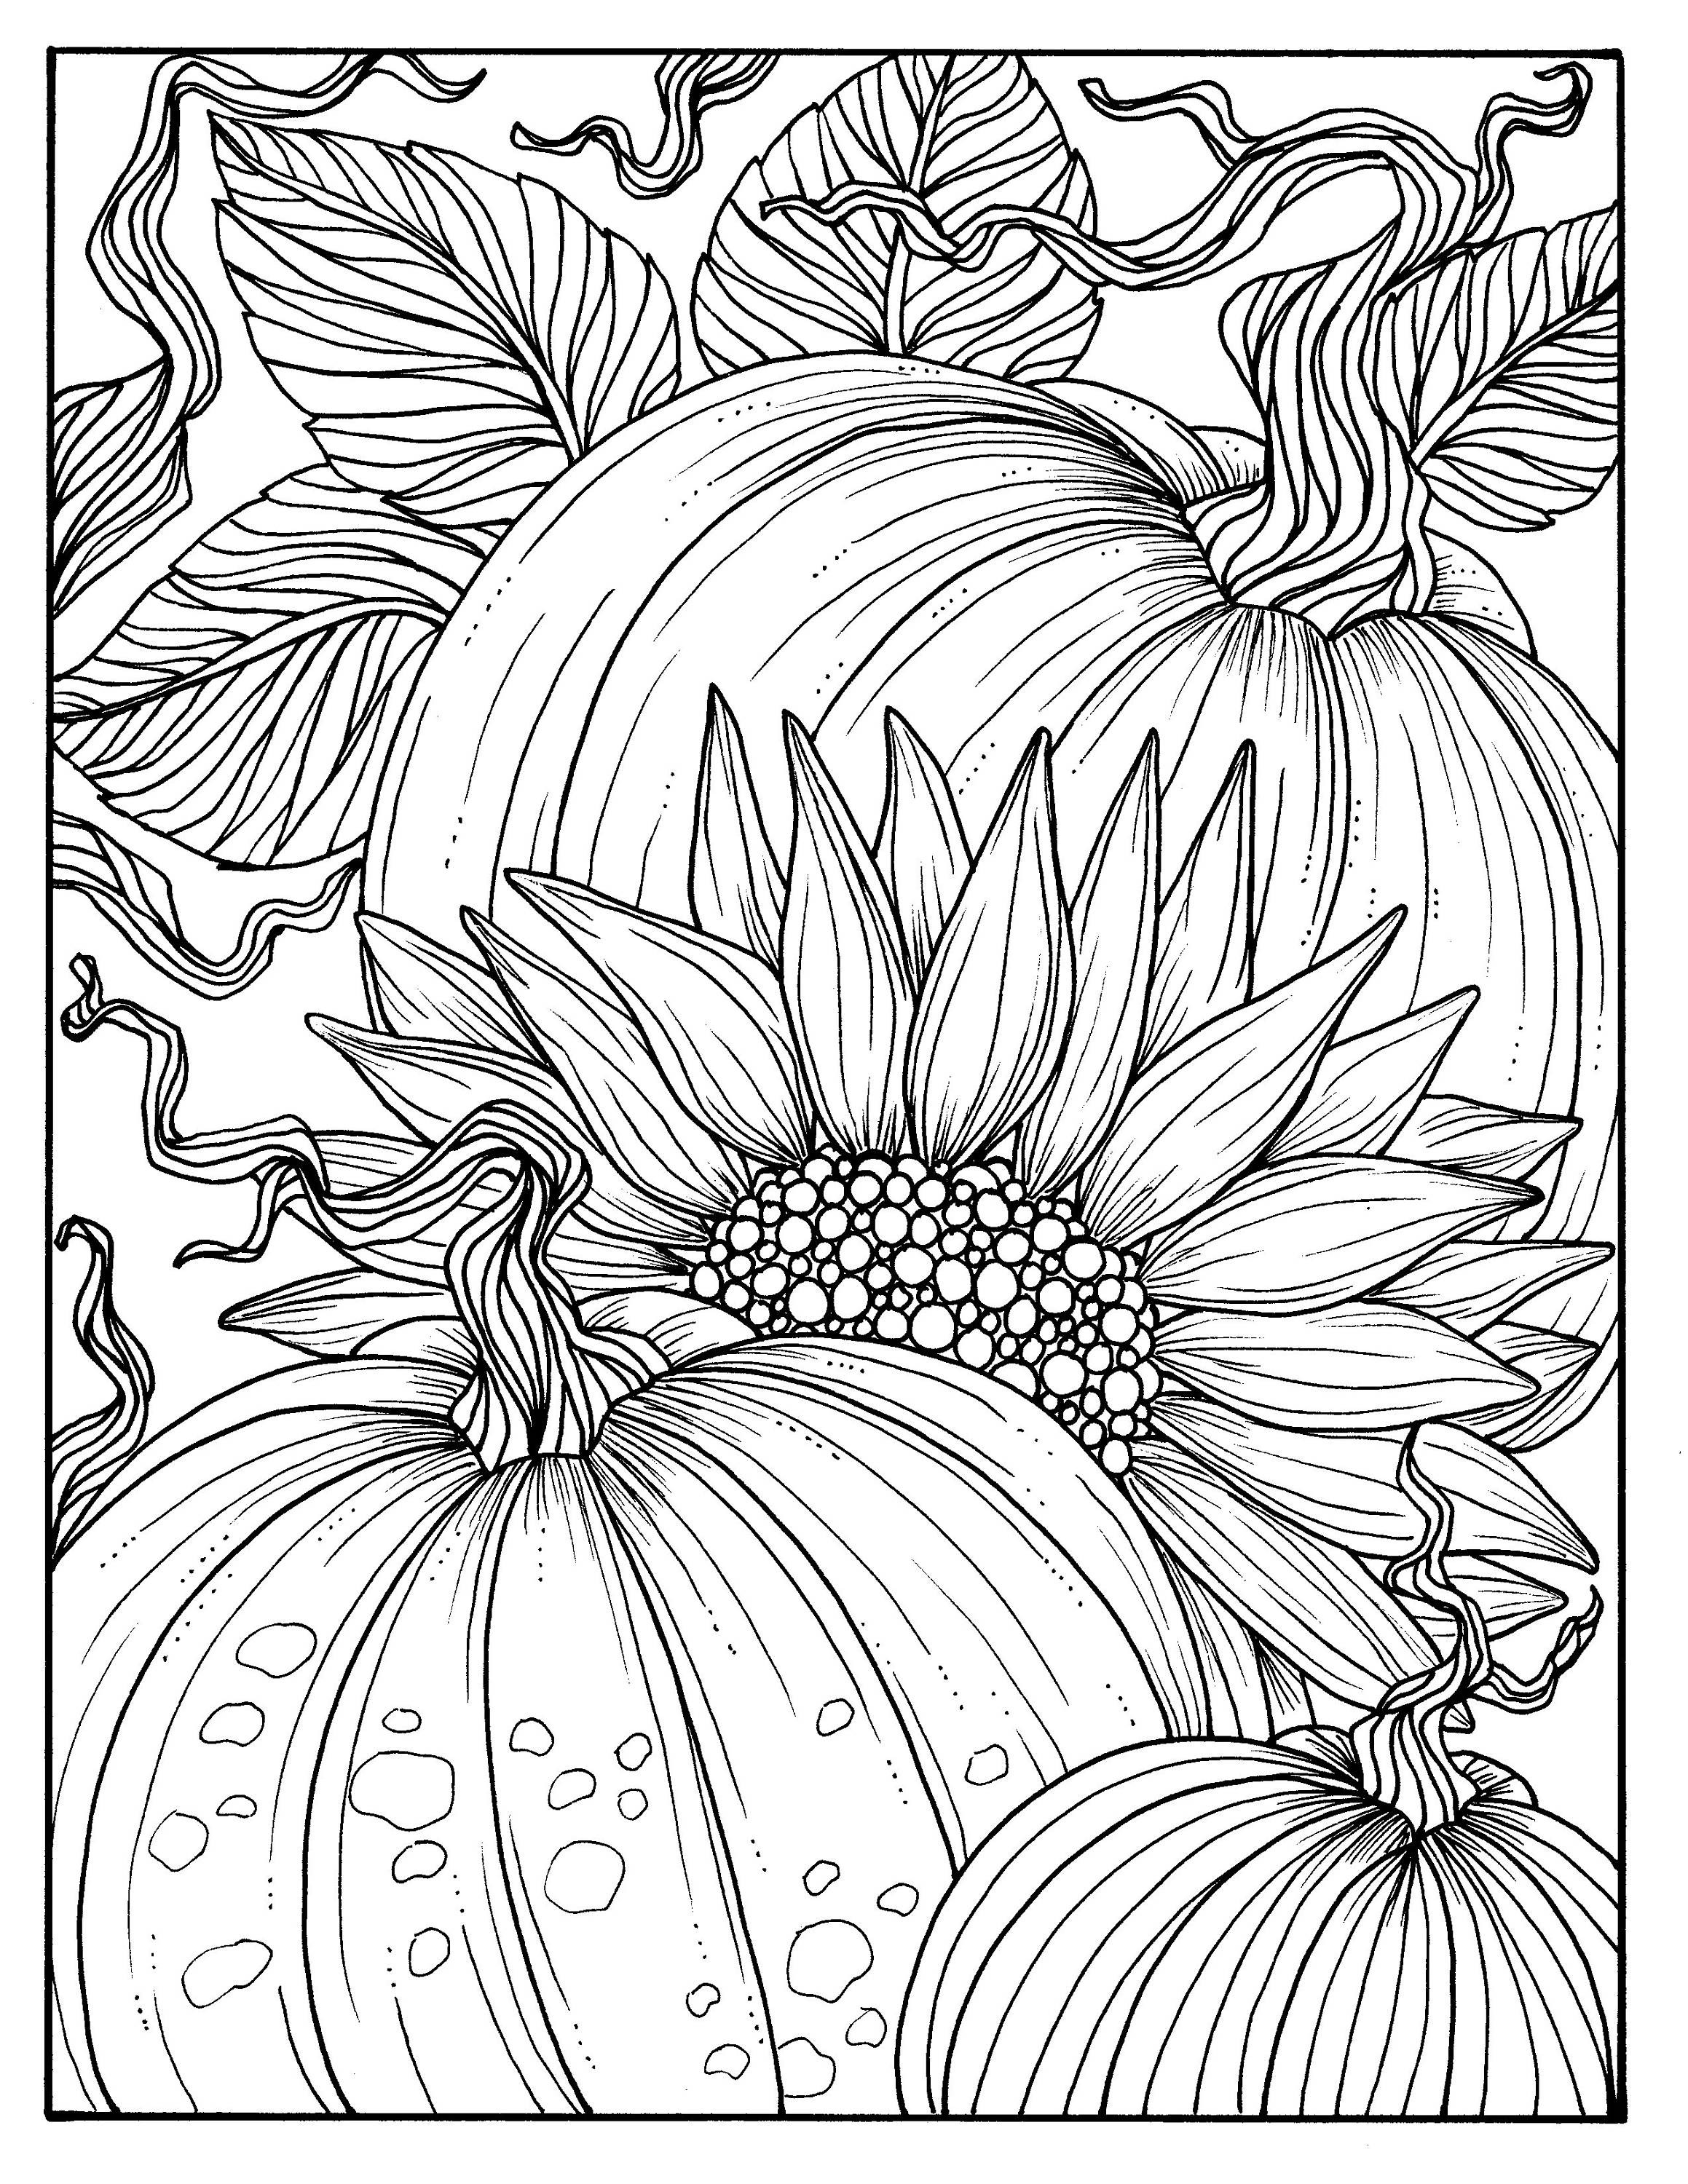 Autumn Coloring Pages For Adults  5 Pages Fabulous Fall Digital Downloads to Color Punpkins